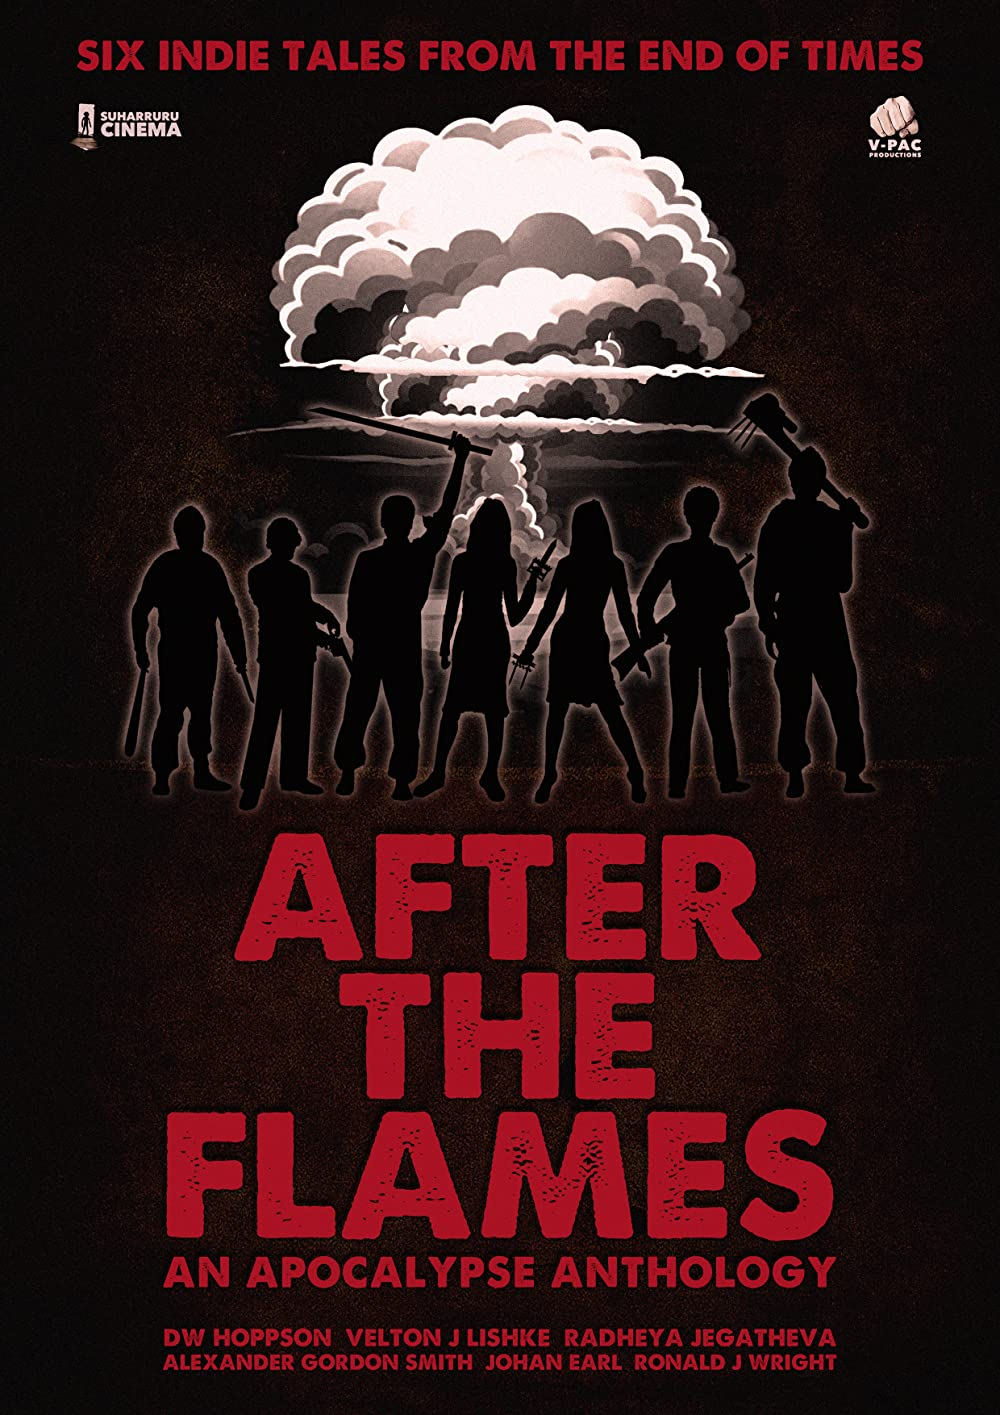 Download After the Flames: An Apocalypse Anthology (2020) WebRip 720p Full Movie [In English] With Hindi Subtitles Full Movie Online On 1xcinema.com